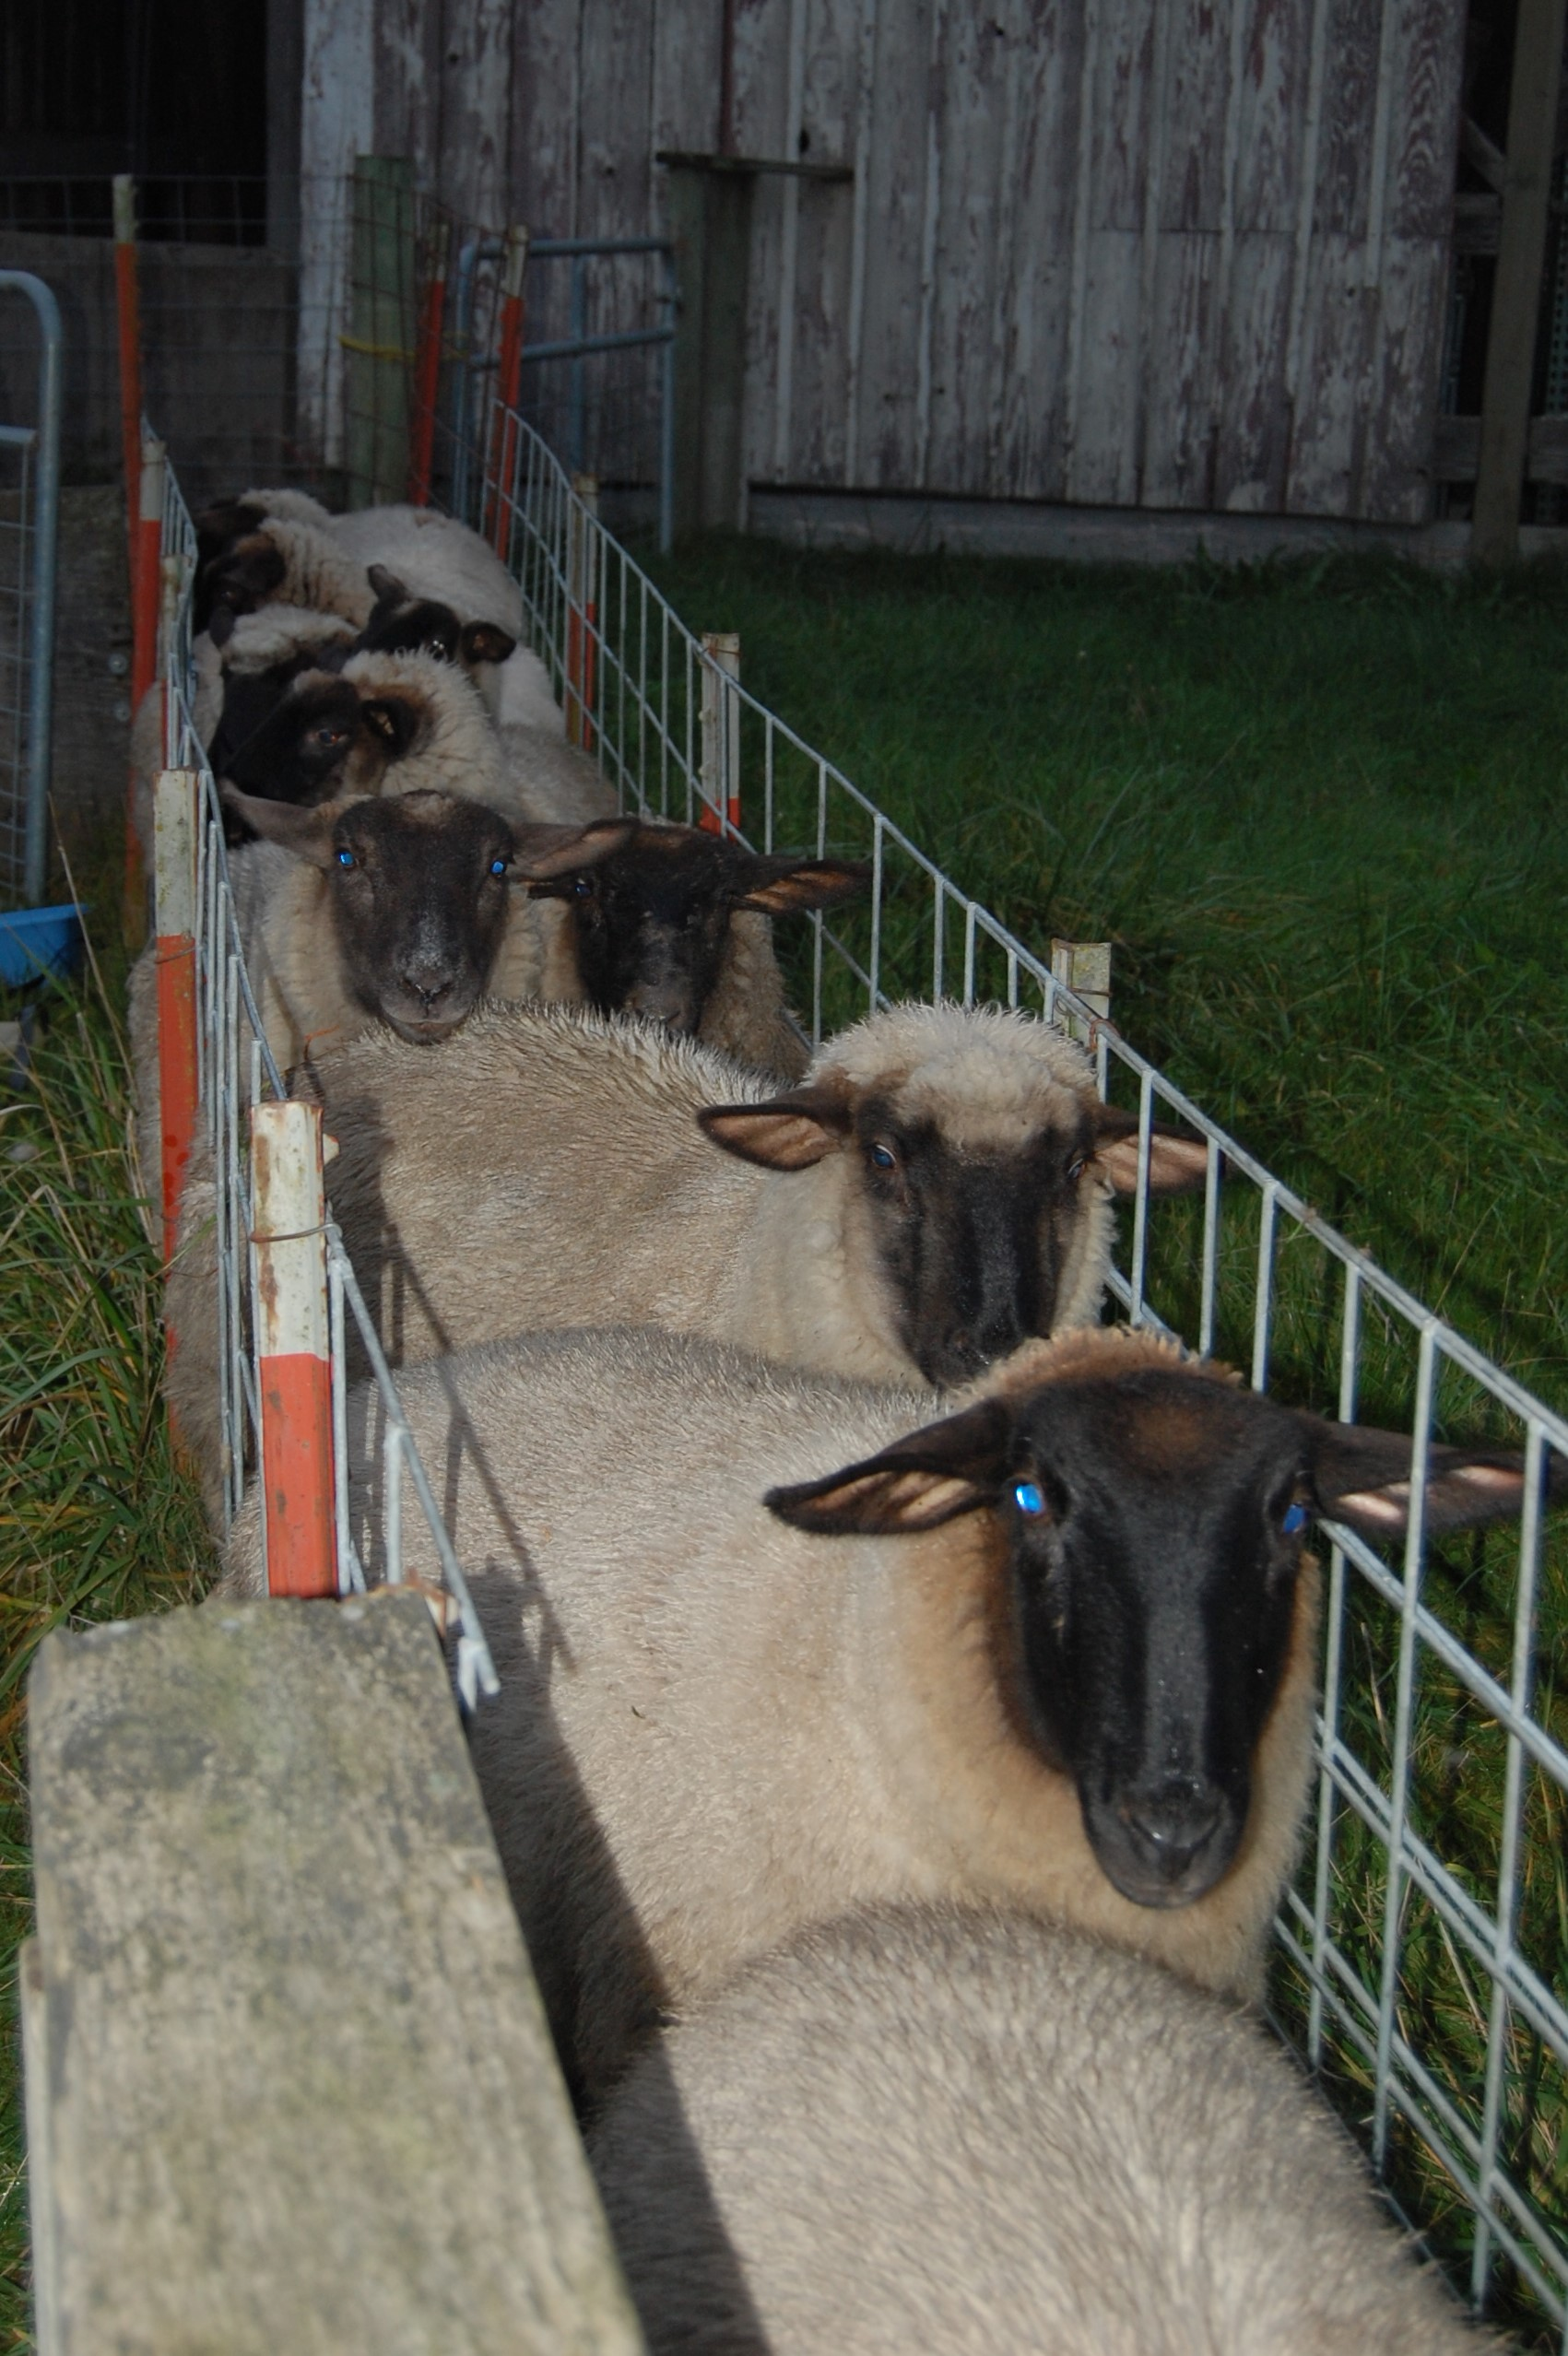 Working area for sheep.